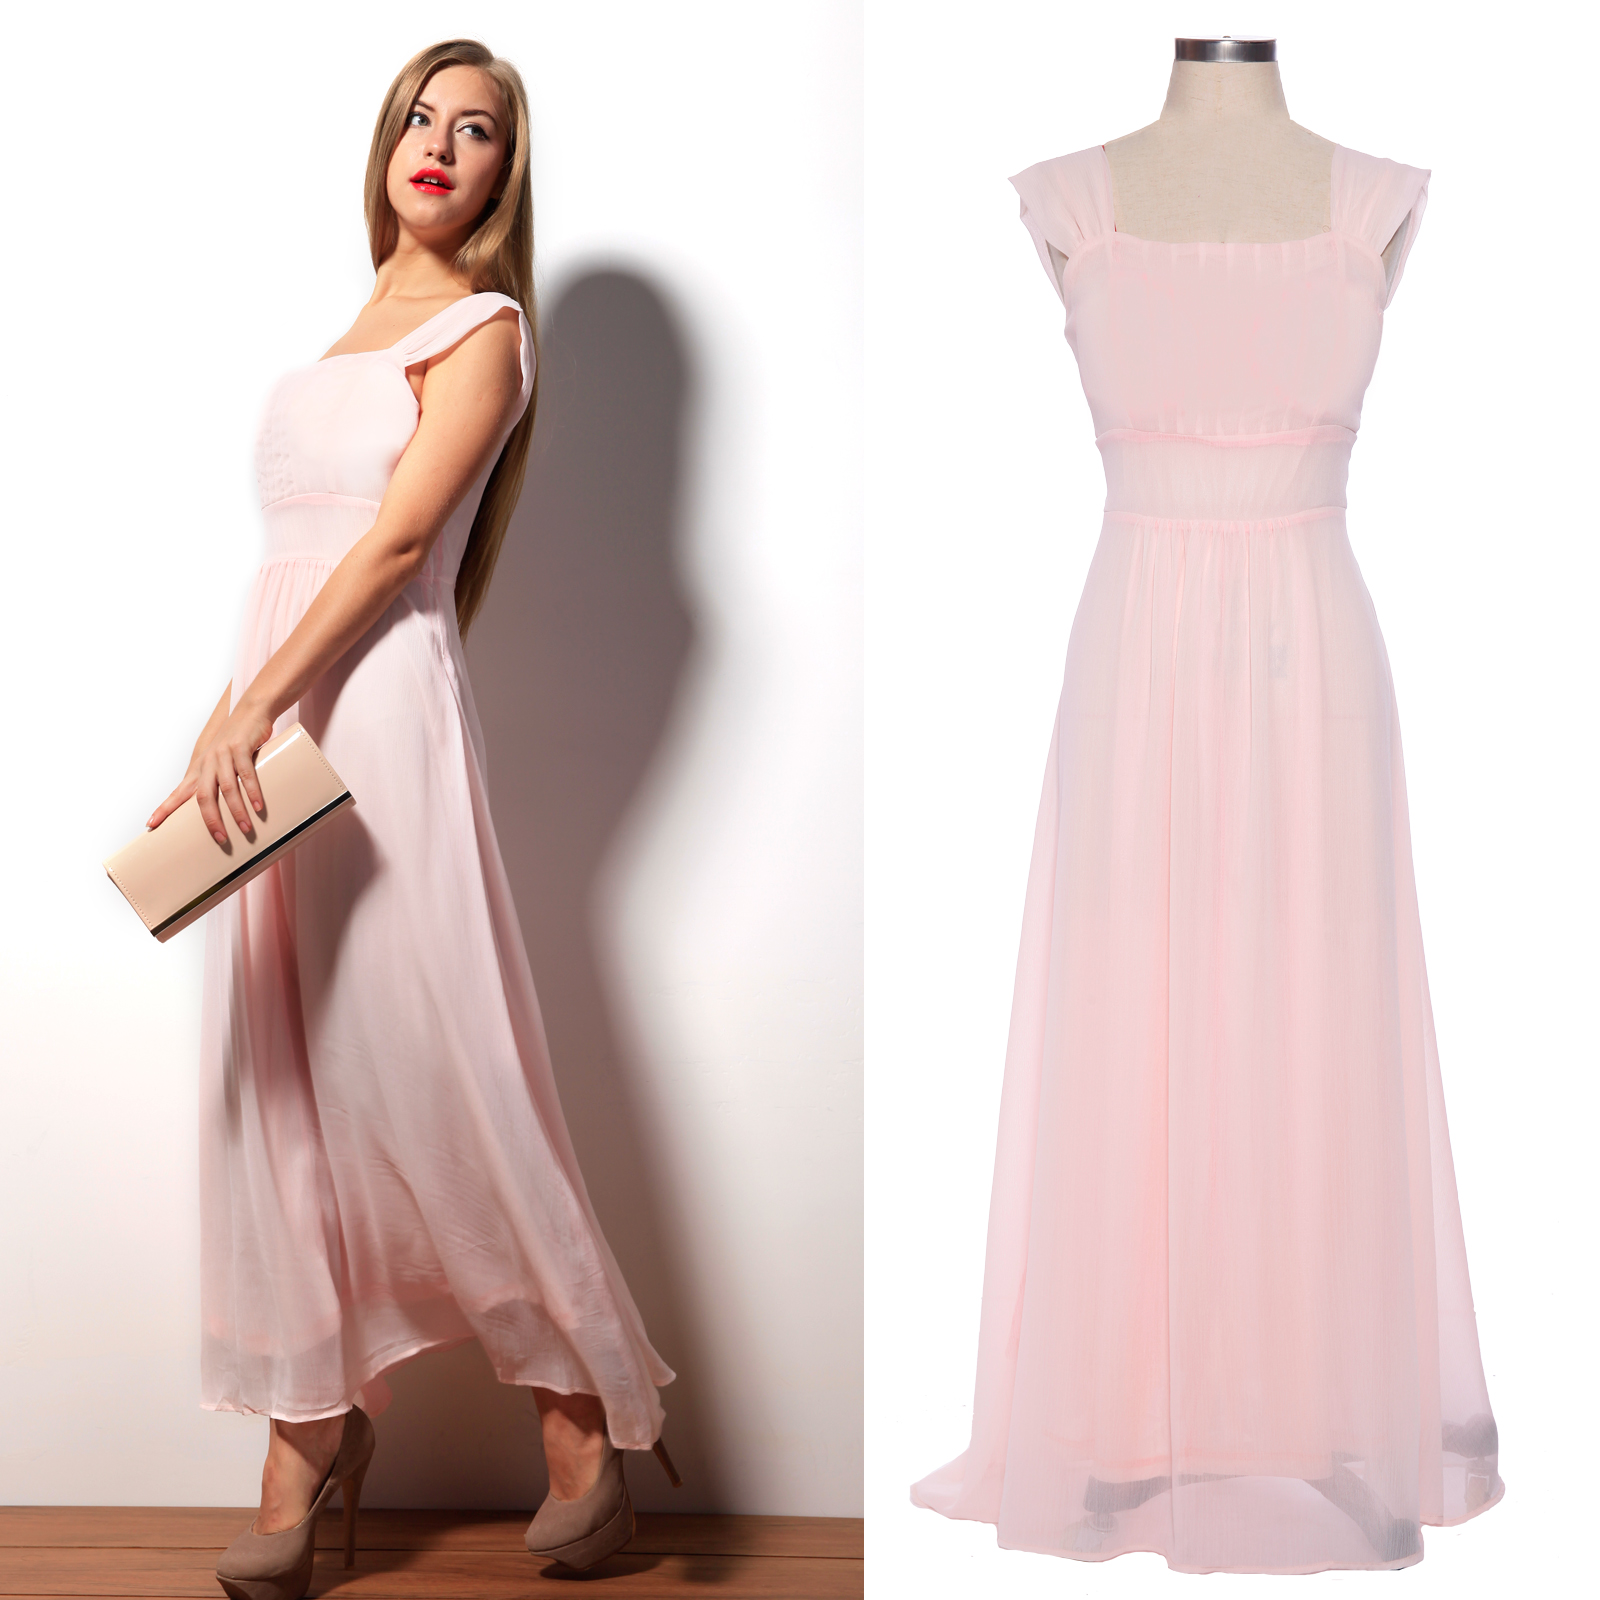 Womens dress party evening long dresses cocktail prom for Designer brand wedding dresses